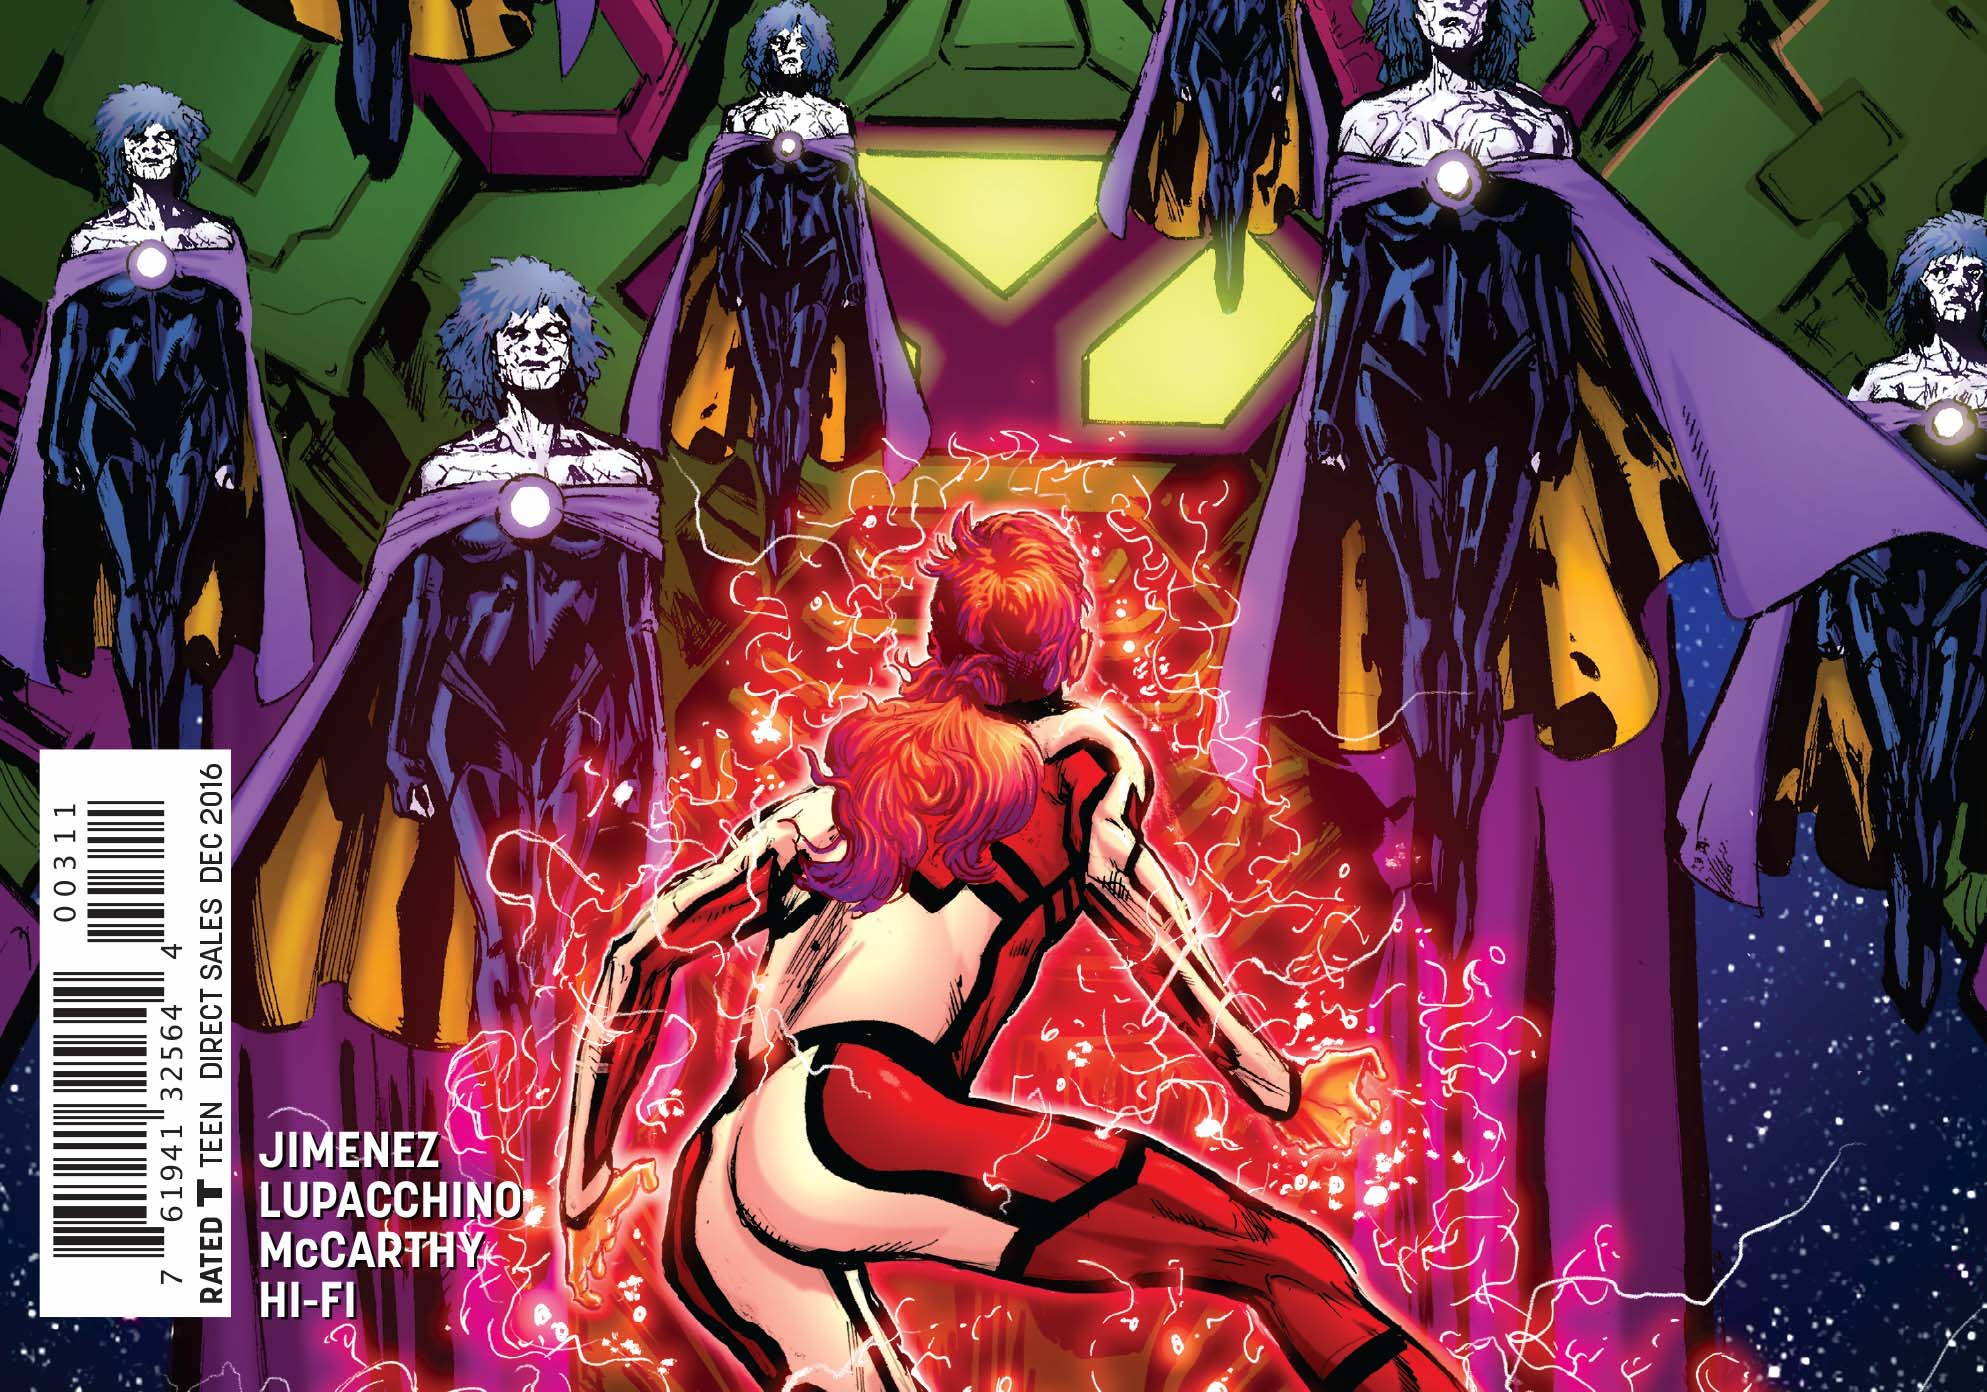 Superwoman has impressed with two strong issues thus far and has now introduced a team of villains to the arc. Can issue three continue the trend and is it good?